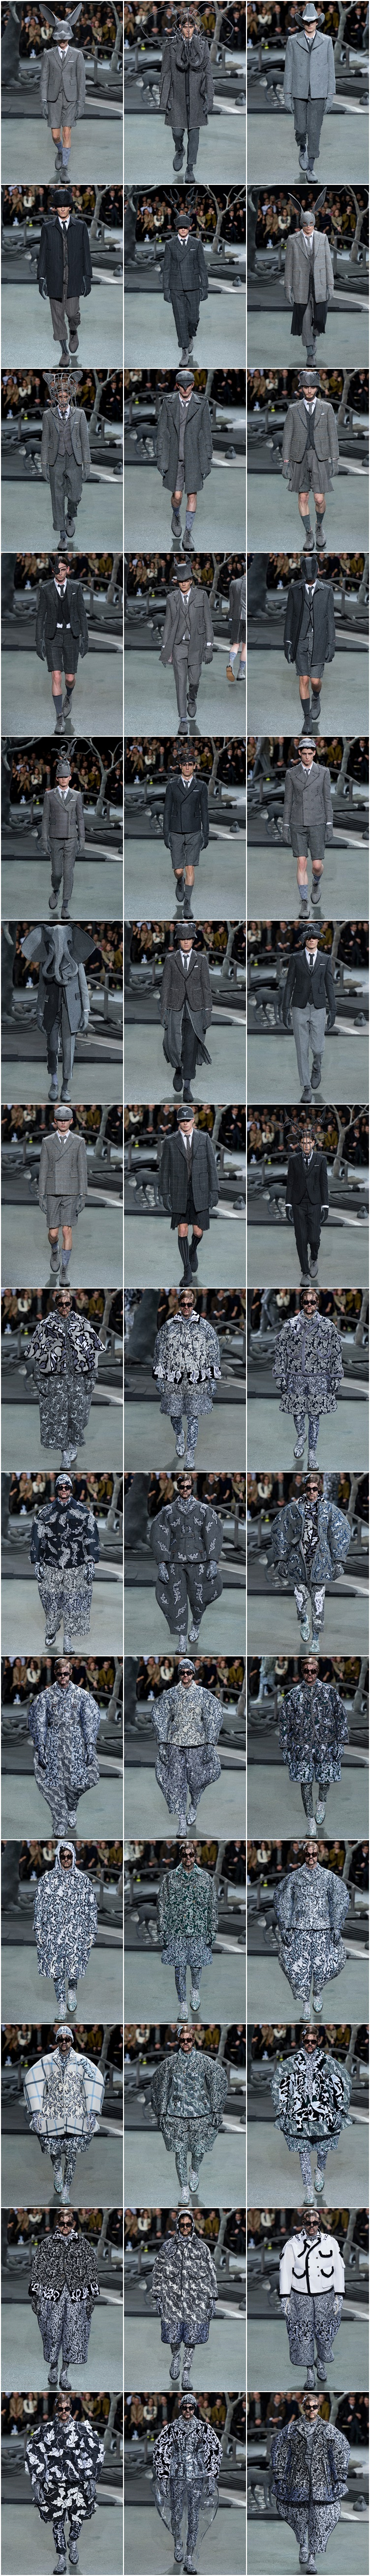 thom-browne-fall-winter-2014-fashion4addicts.com